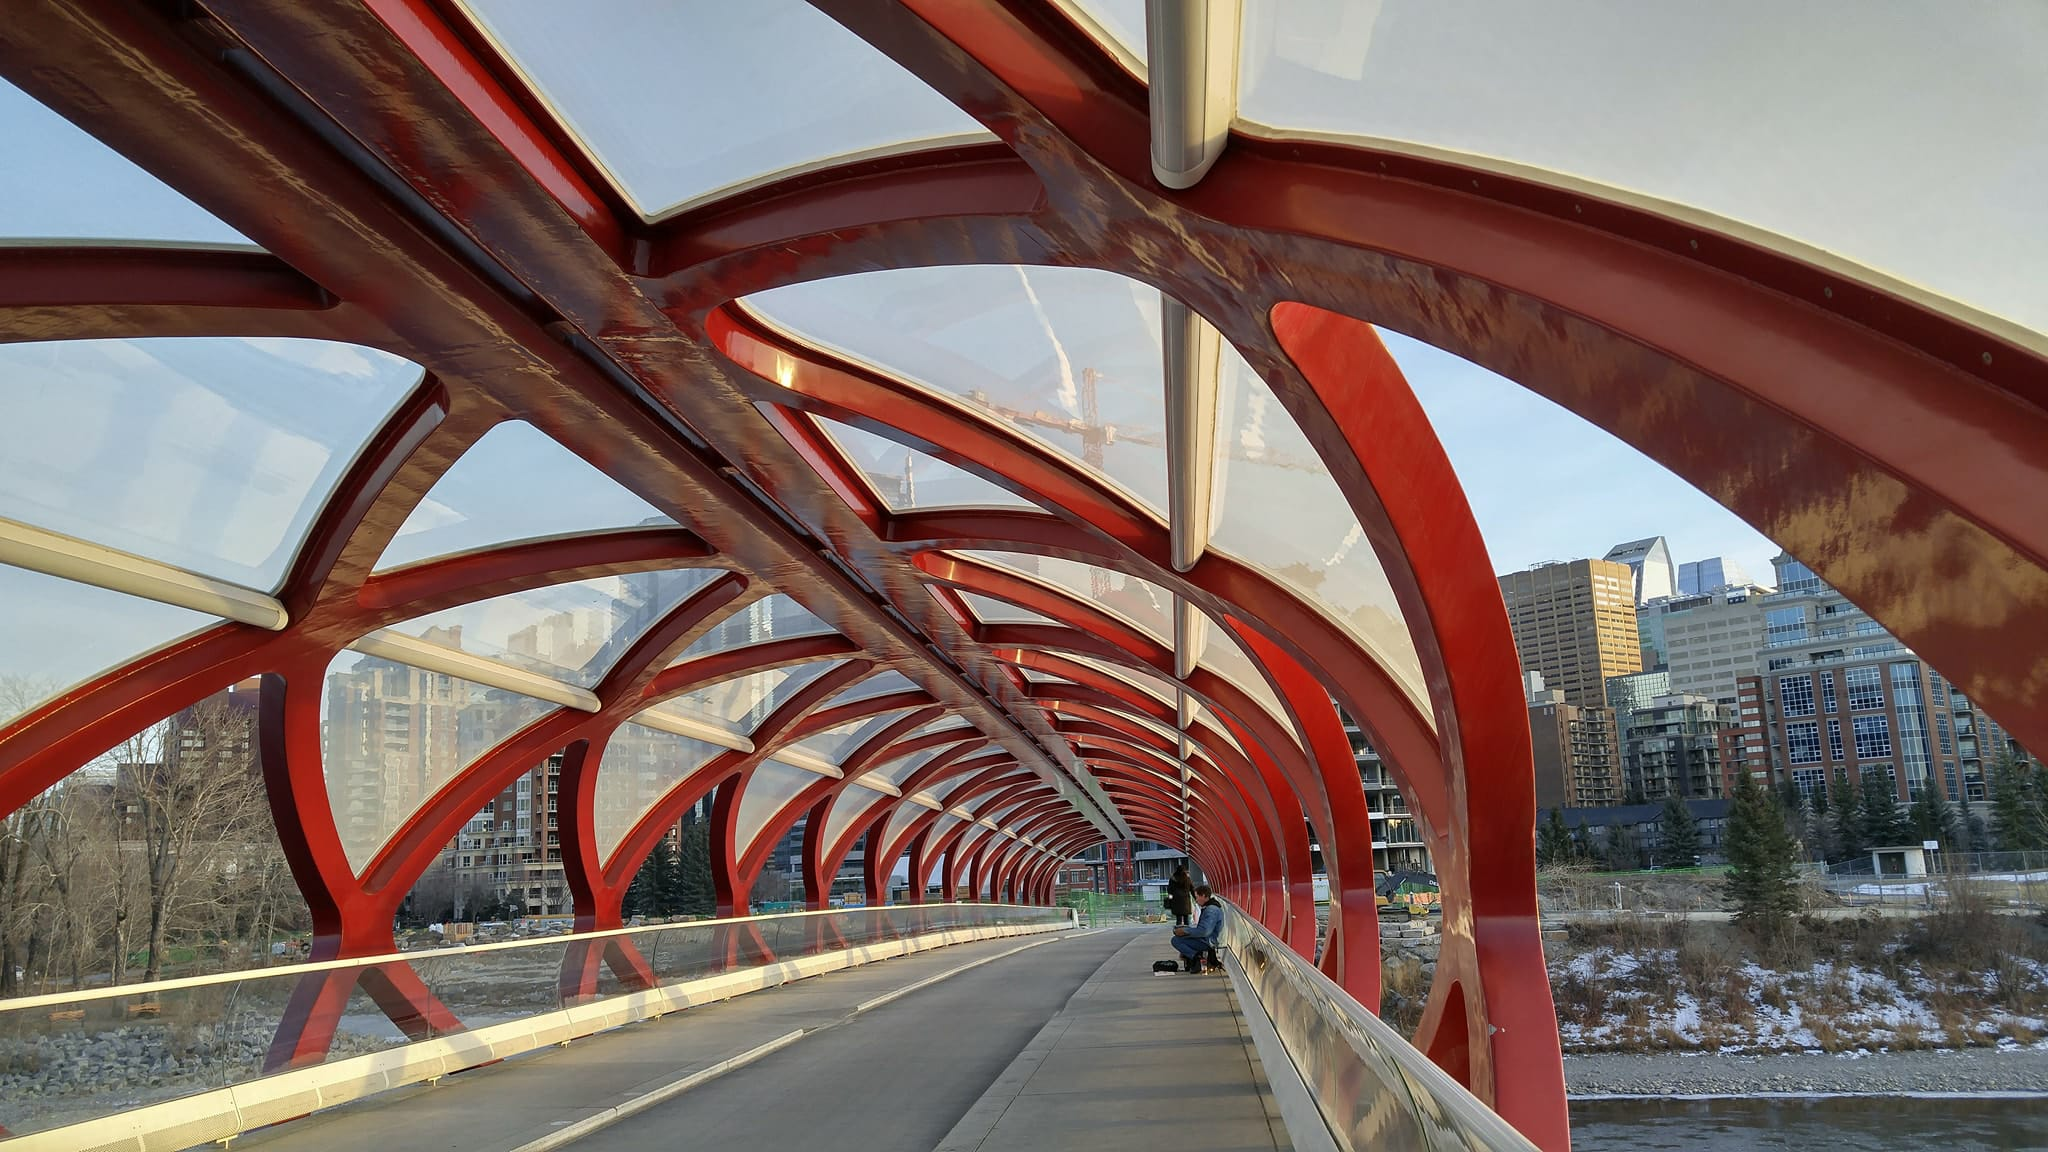 The Peace Bridge- one of the most iconic sights of Calgary